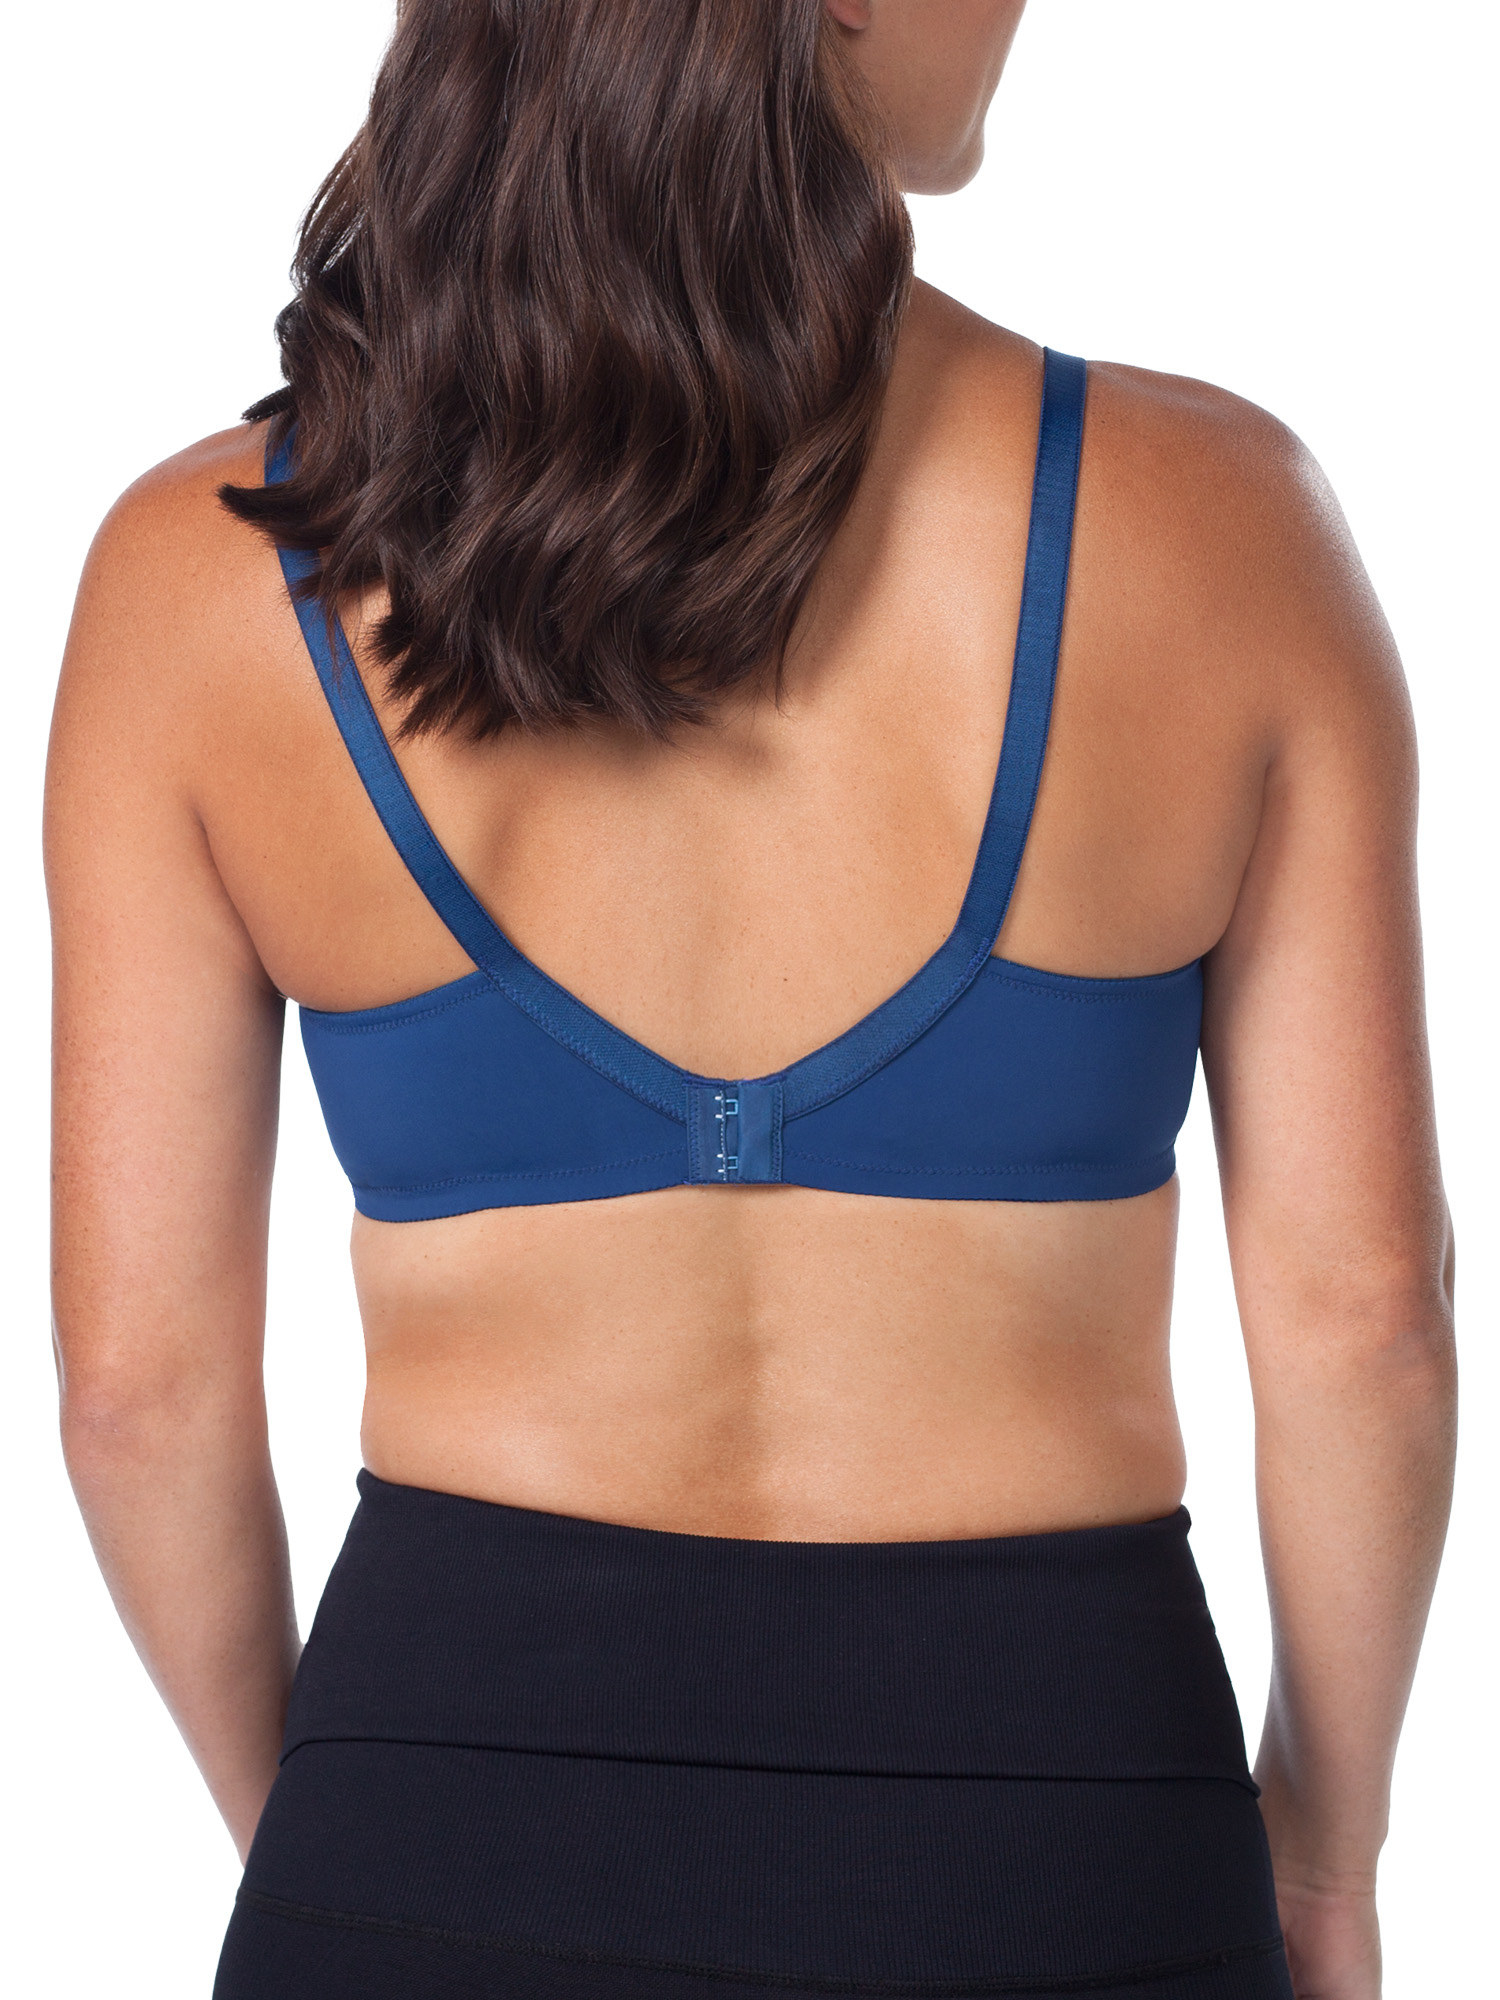 ebd60944e 17 Bras You Can Get At Walmart That People Actually Swear By